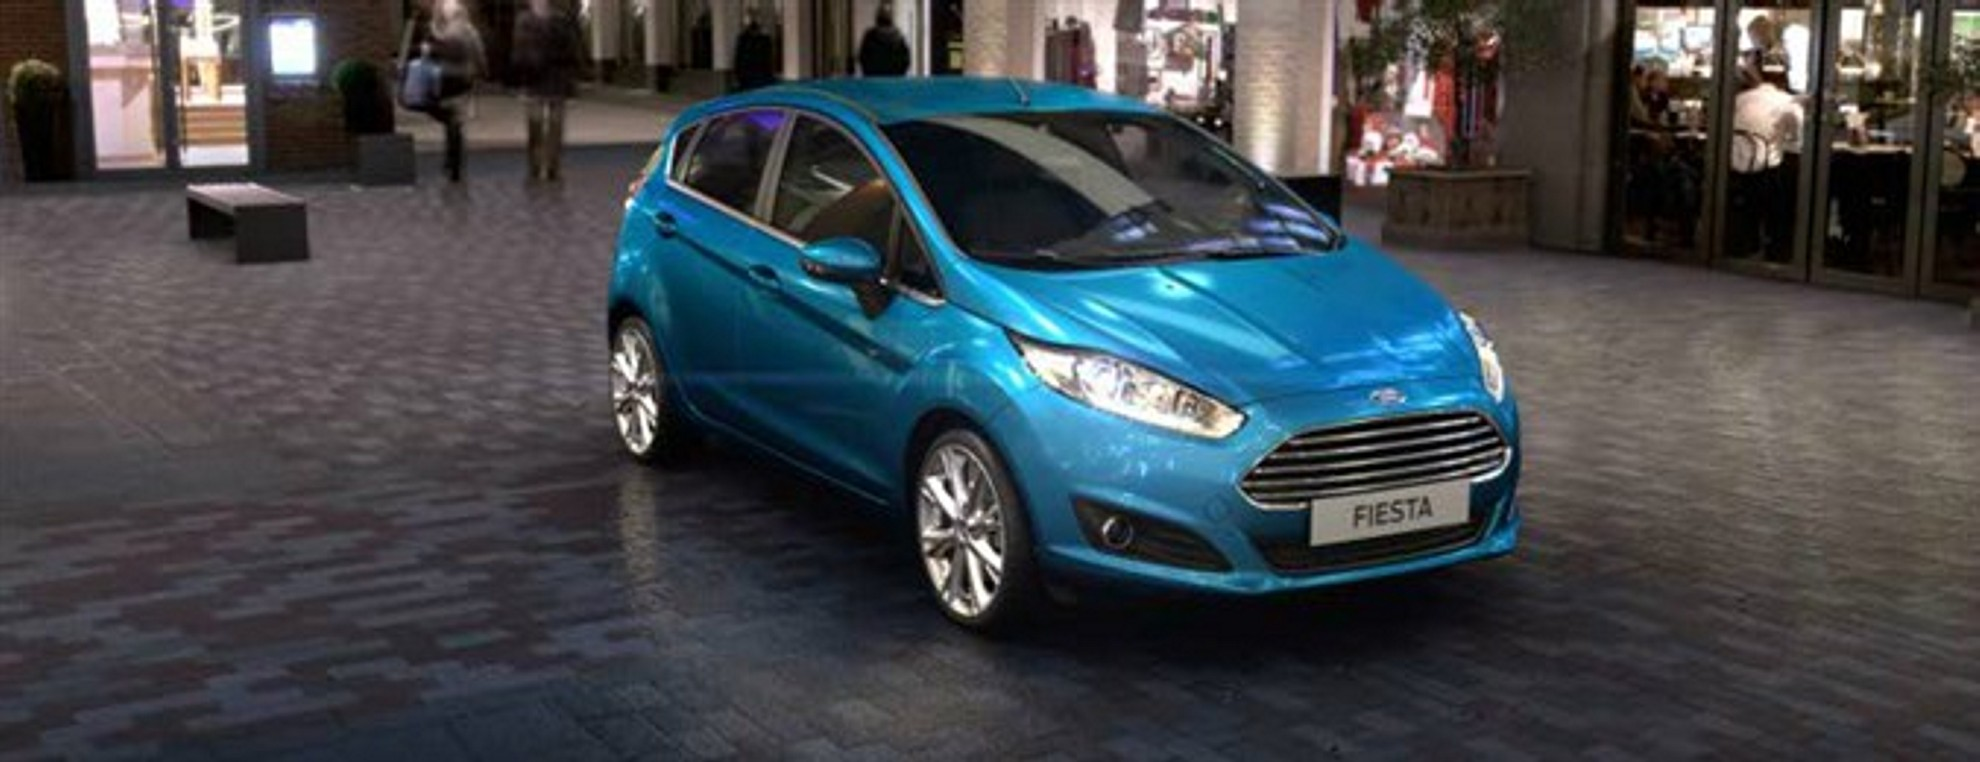 ... Claims Cars Won't Change Drastically in Design Due to New Technology